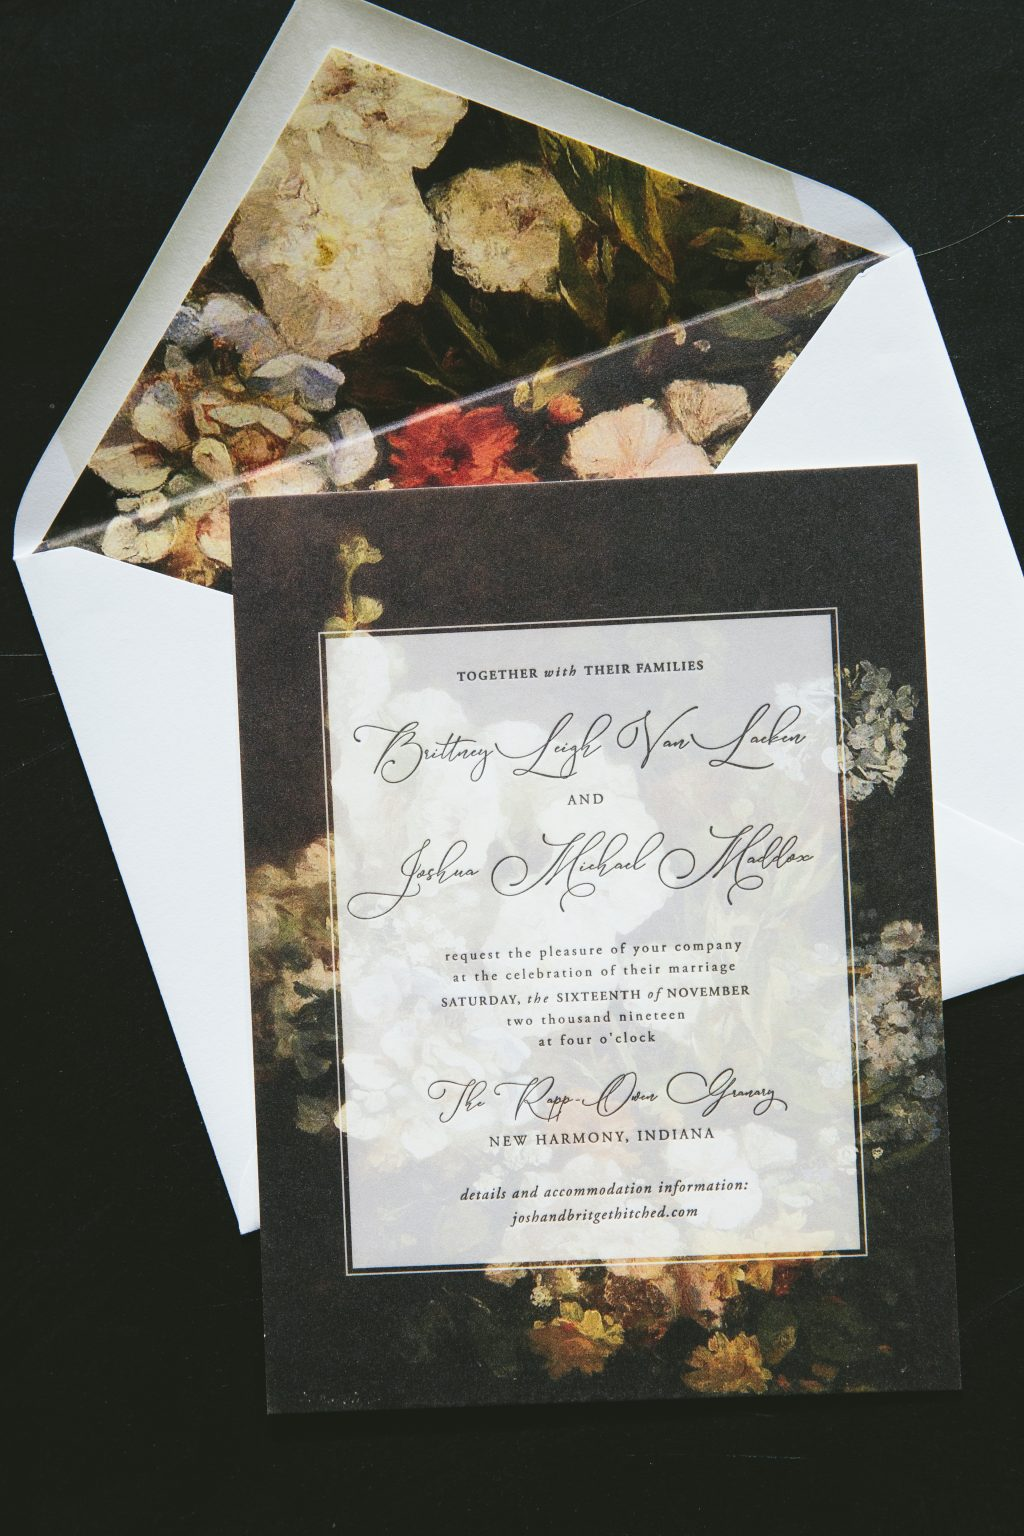 Moody floral invitations inspired by Neville